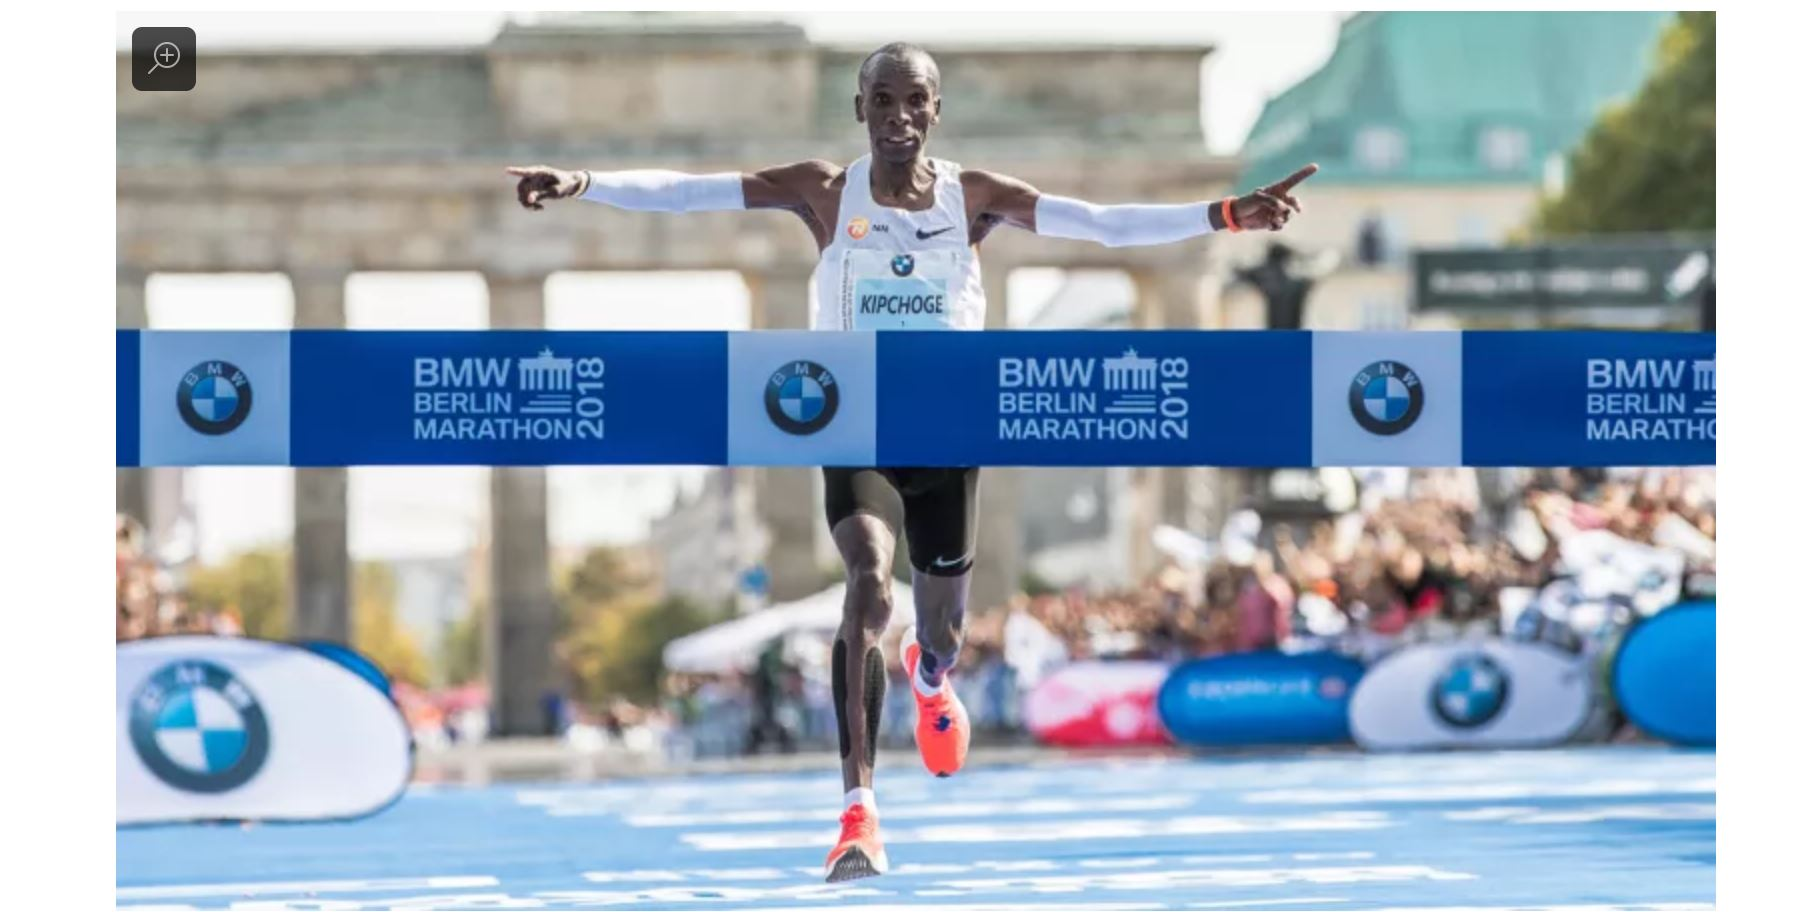 Eliud Kipchoge won the Berlin Marathon this morning in a time of 2:01:39  -   78 seconds faster than Kimetto's previous record mark of 2:02:57.